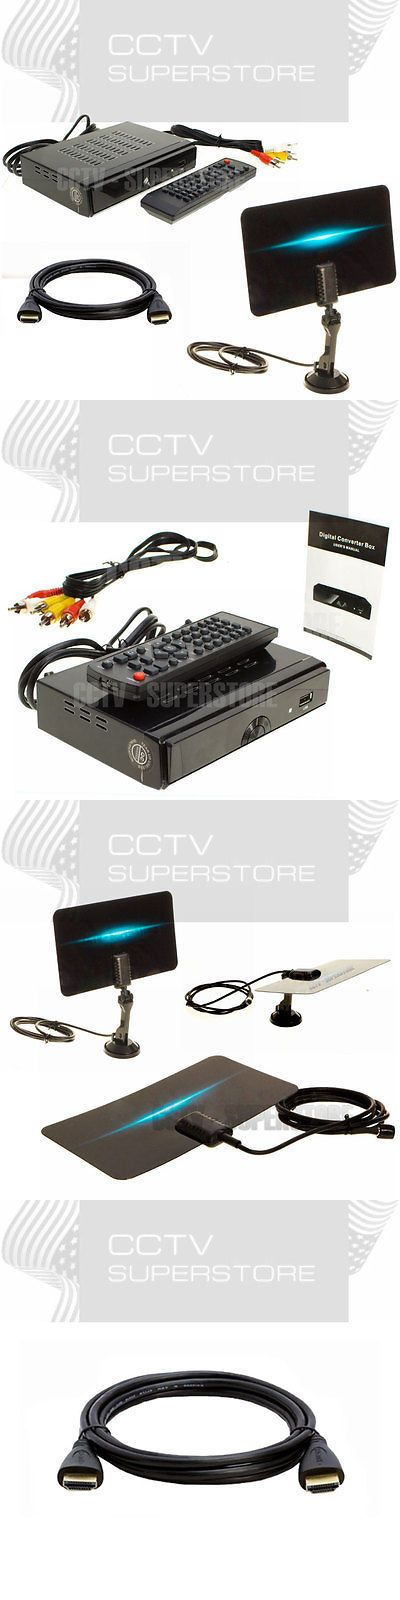 Antennas and Dishes: Hdtv Digital Converter Box Flat Digital Indoor Tv Antenna Hdmi Output -> BUY IT NOW ONLY: $34.45 on eBay!